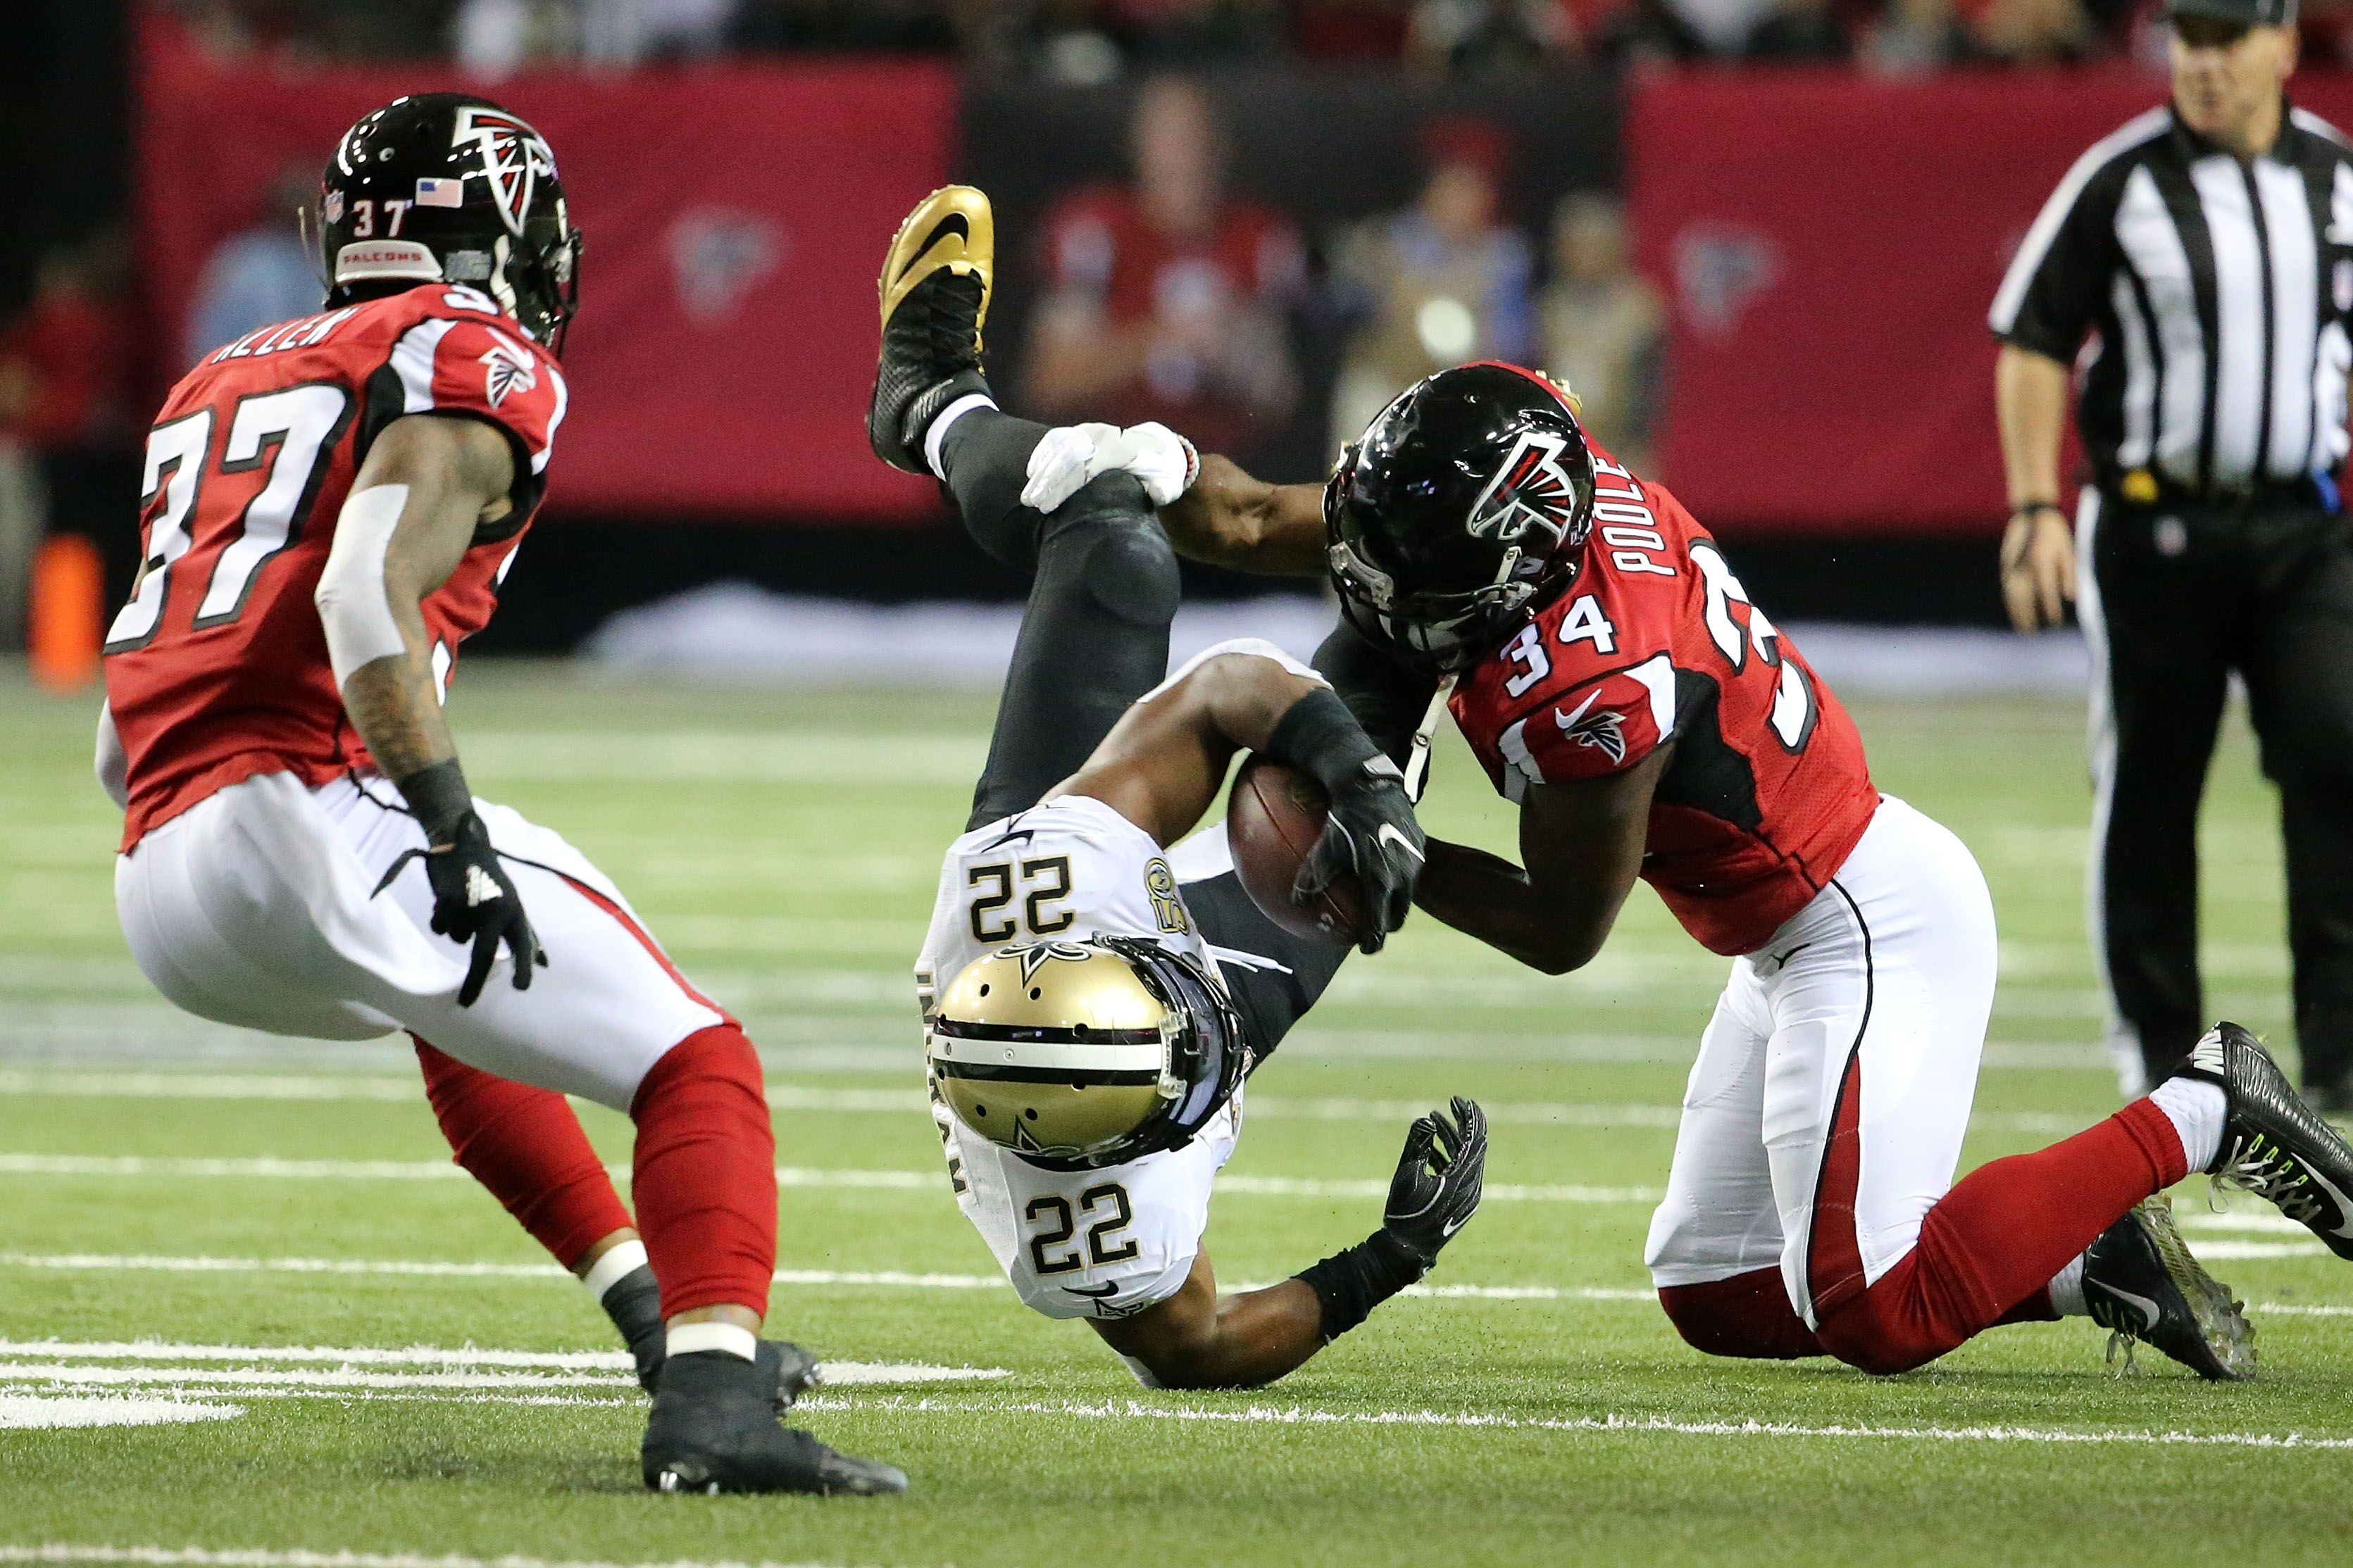 Atlanta Falcons Images: Atlanta Falcons Vs. Saints Week 14 Injury Report- Trufant